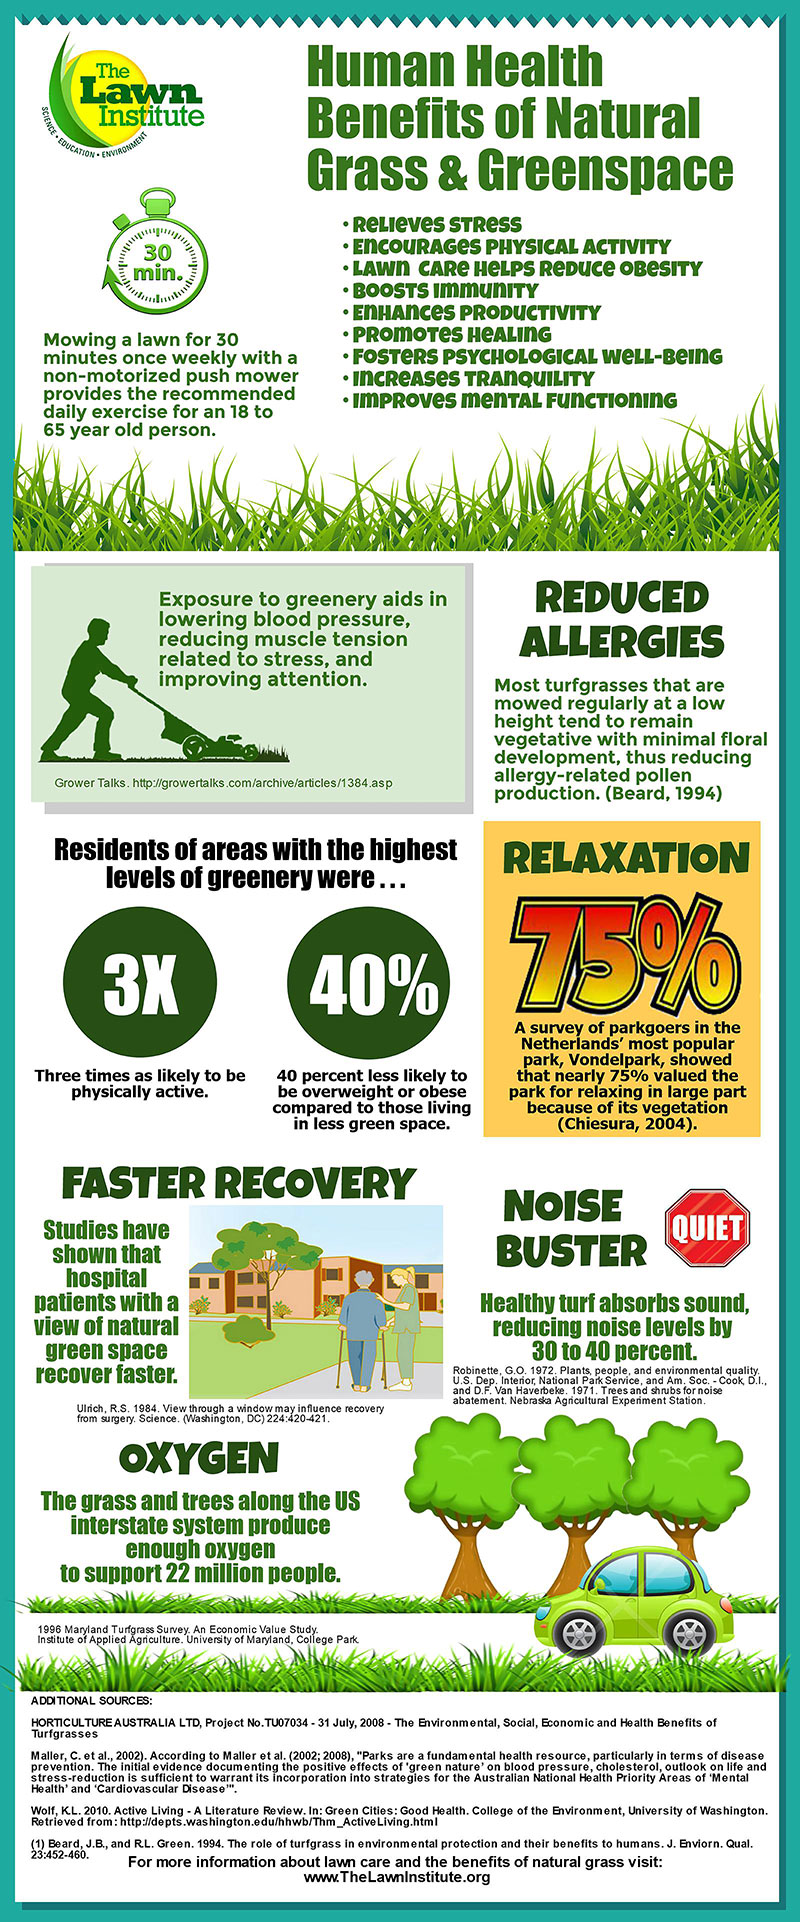 Infographic-Human-Health-Benefits-Lawn-Institute